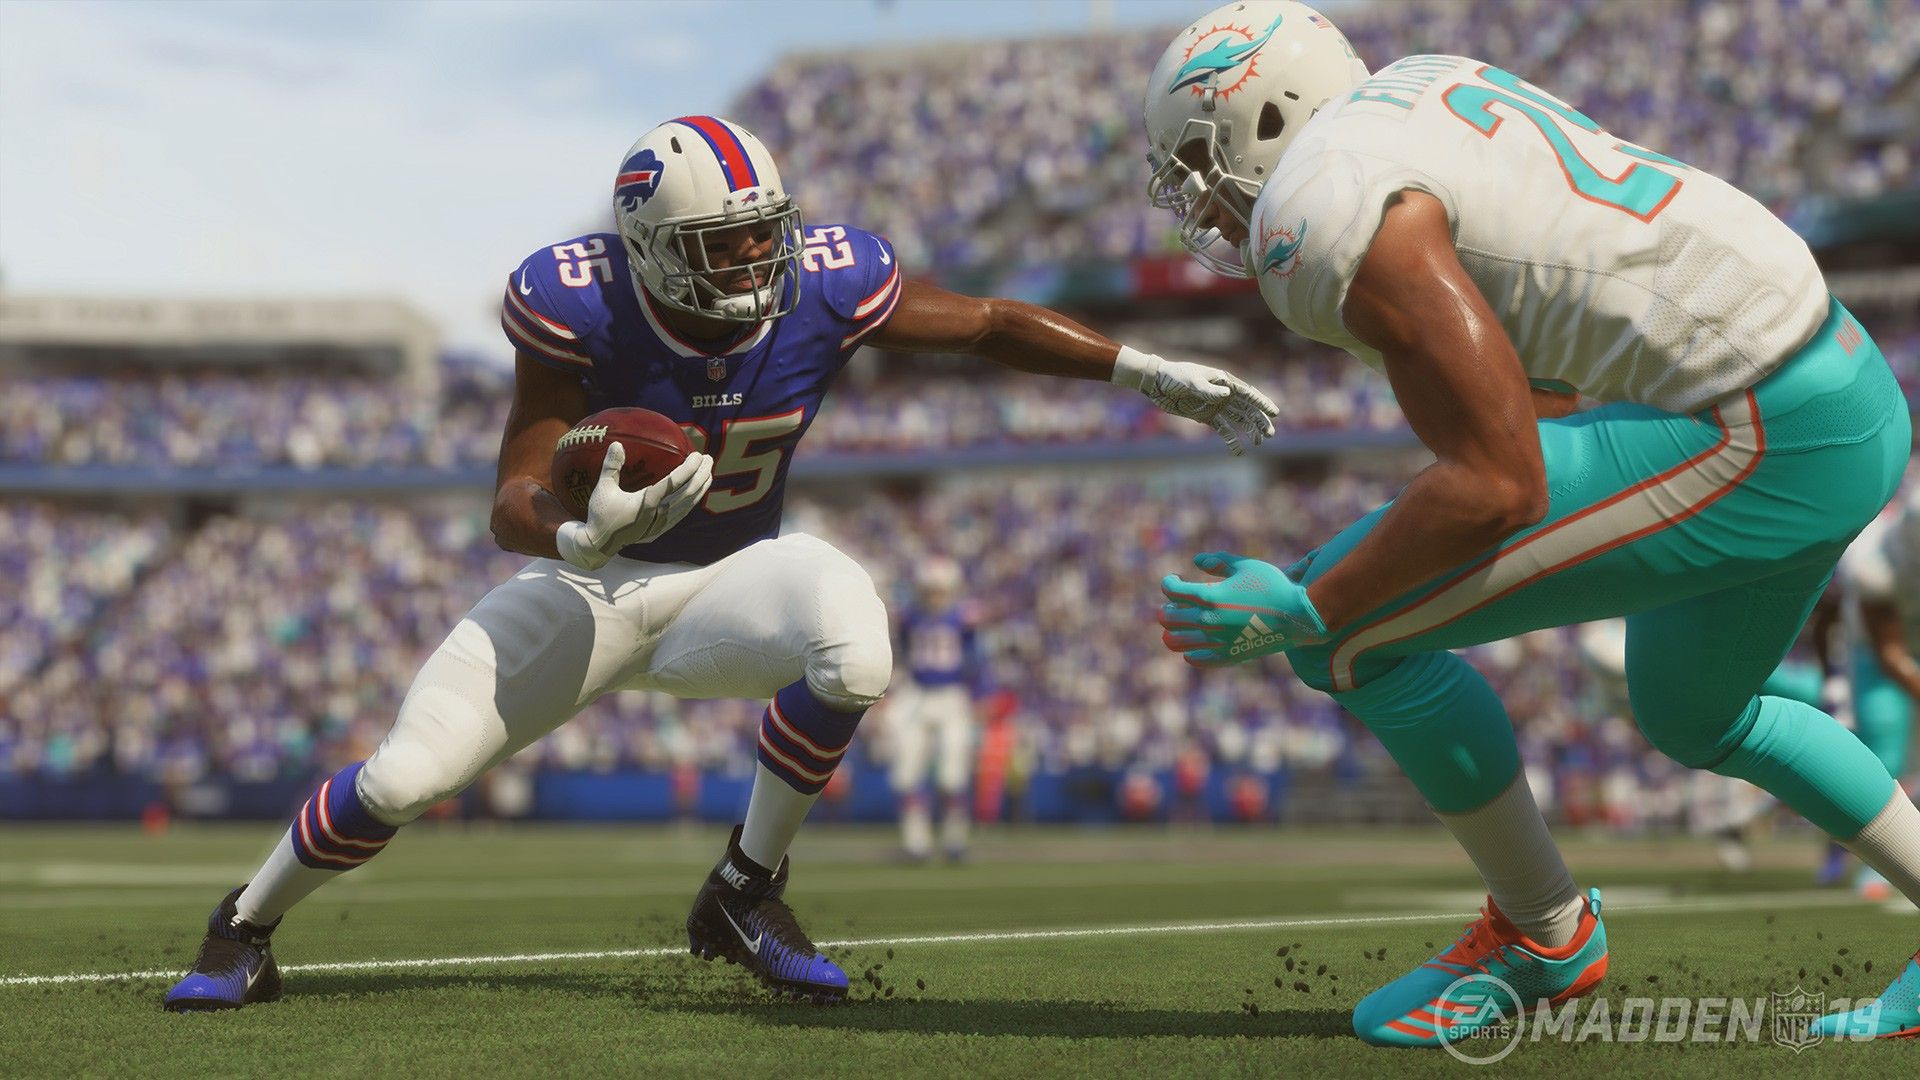 Madden 19 Patch Notes October Update Now Available